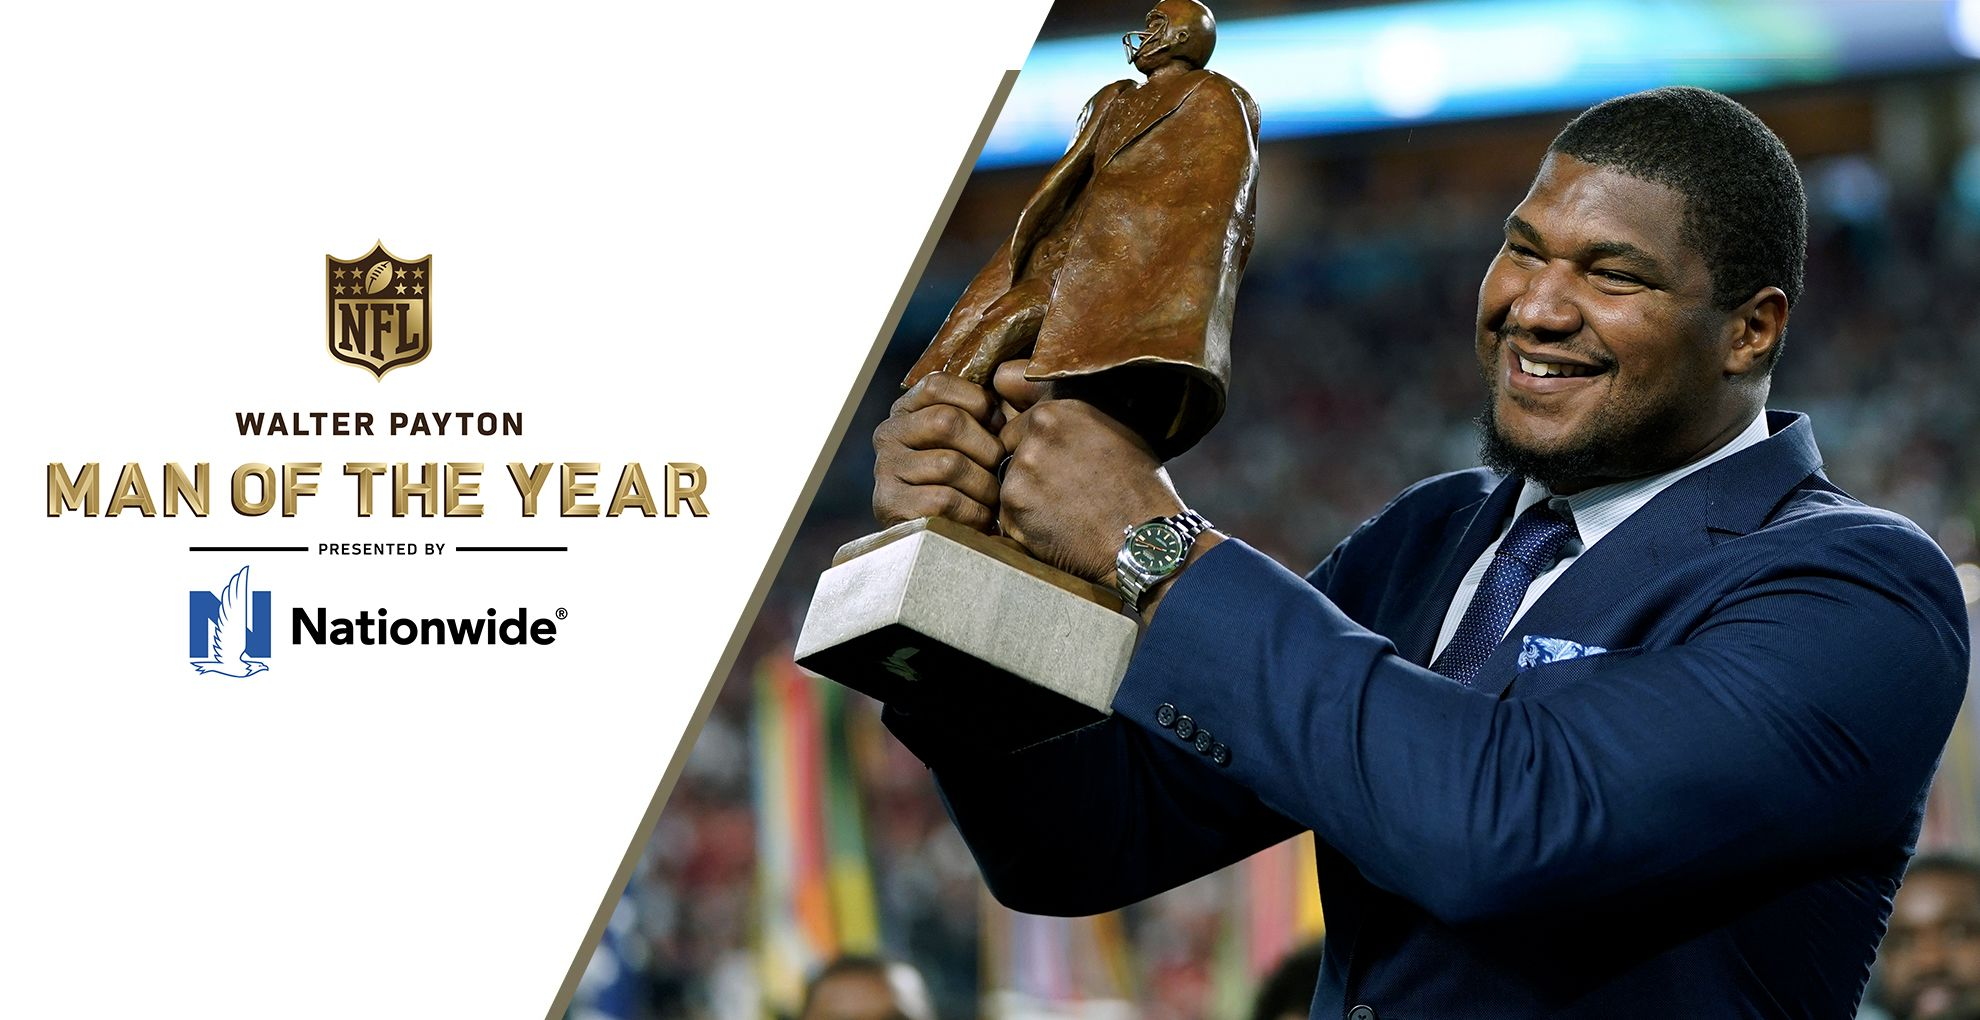 Walter Payton NFL Man of the Year